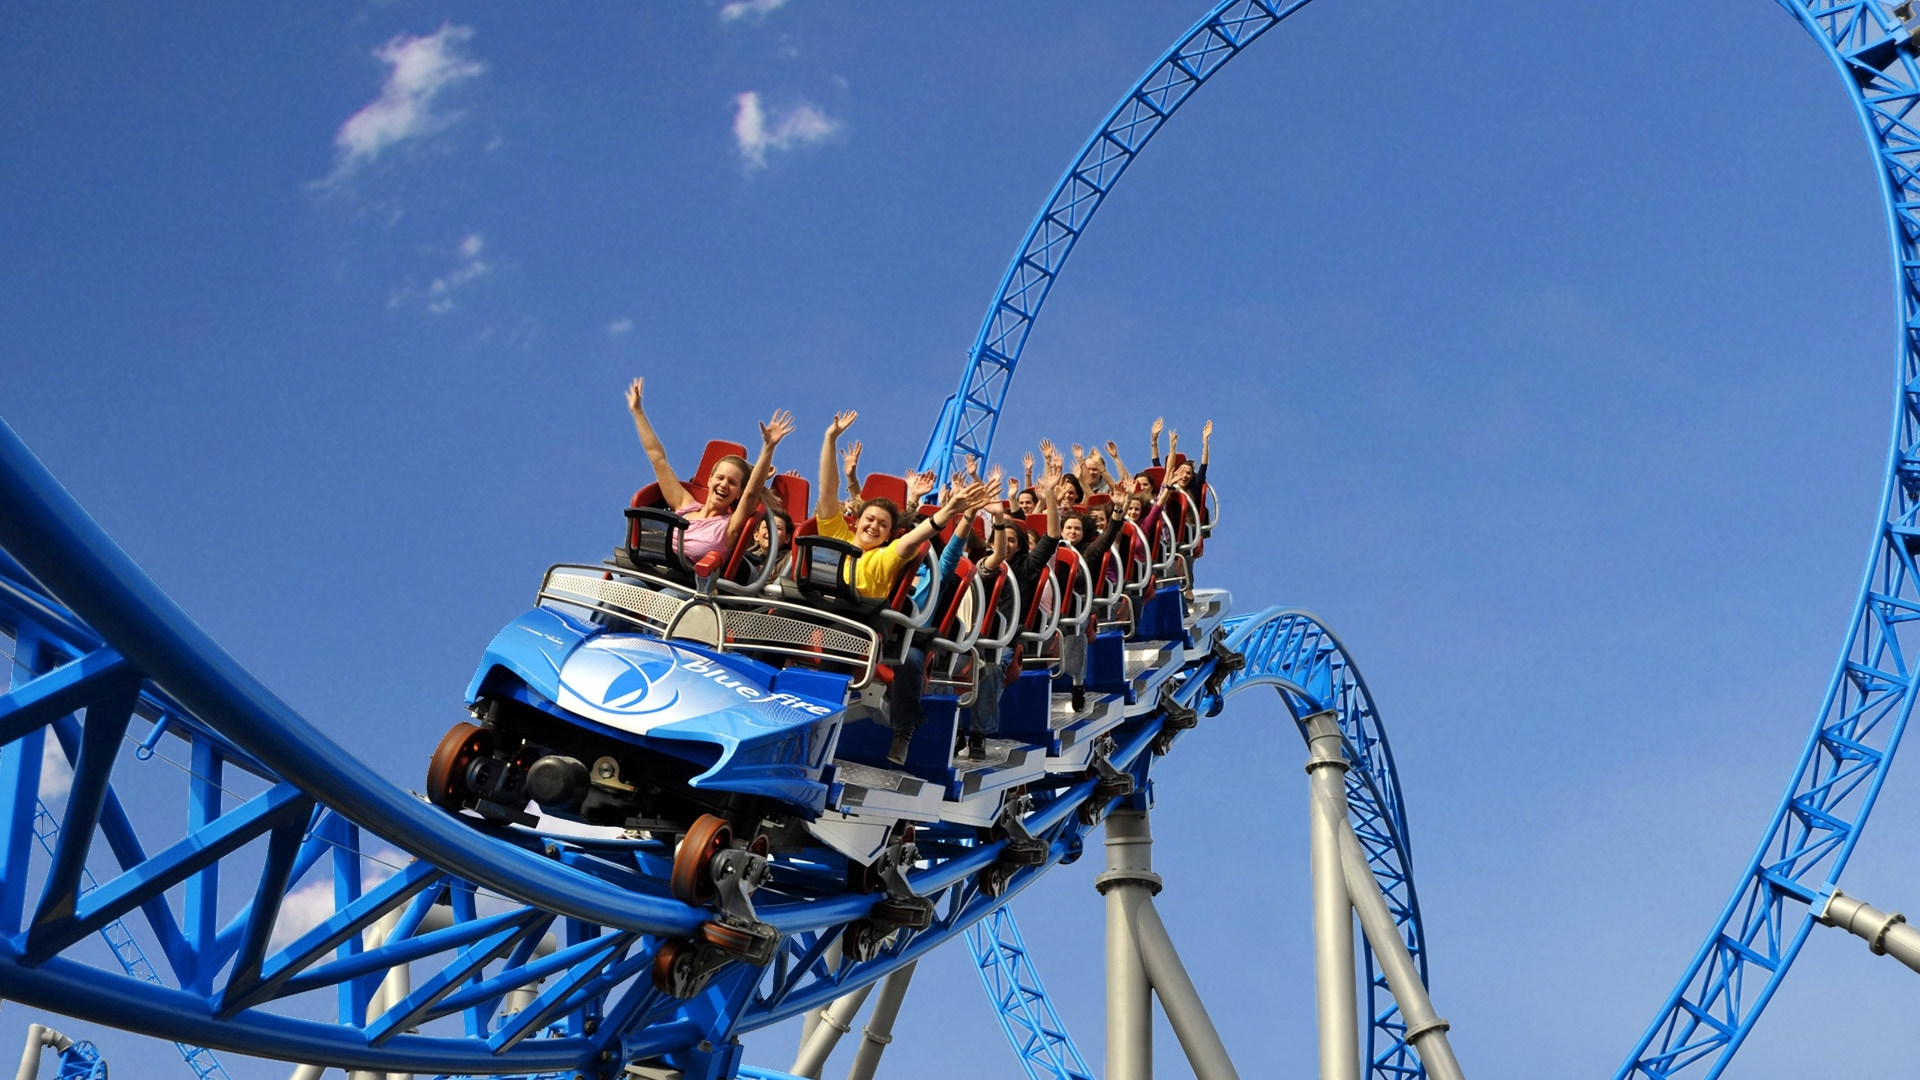 Blue Fire Megacoaster Poweredgazprom - Europa-Park – One Of The intended for Map Of Europa Park Germany